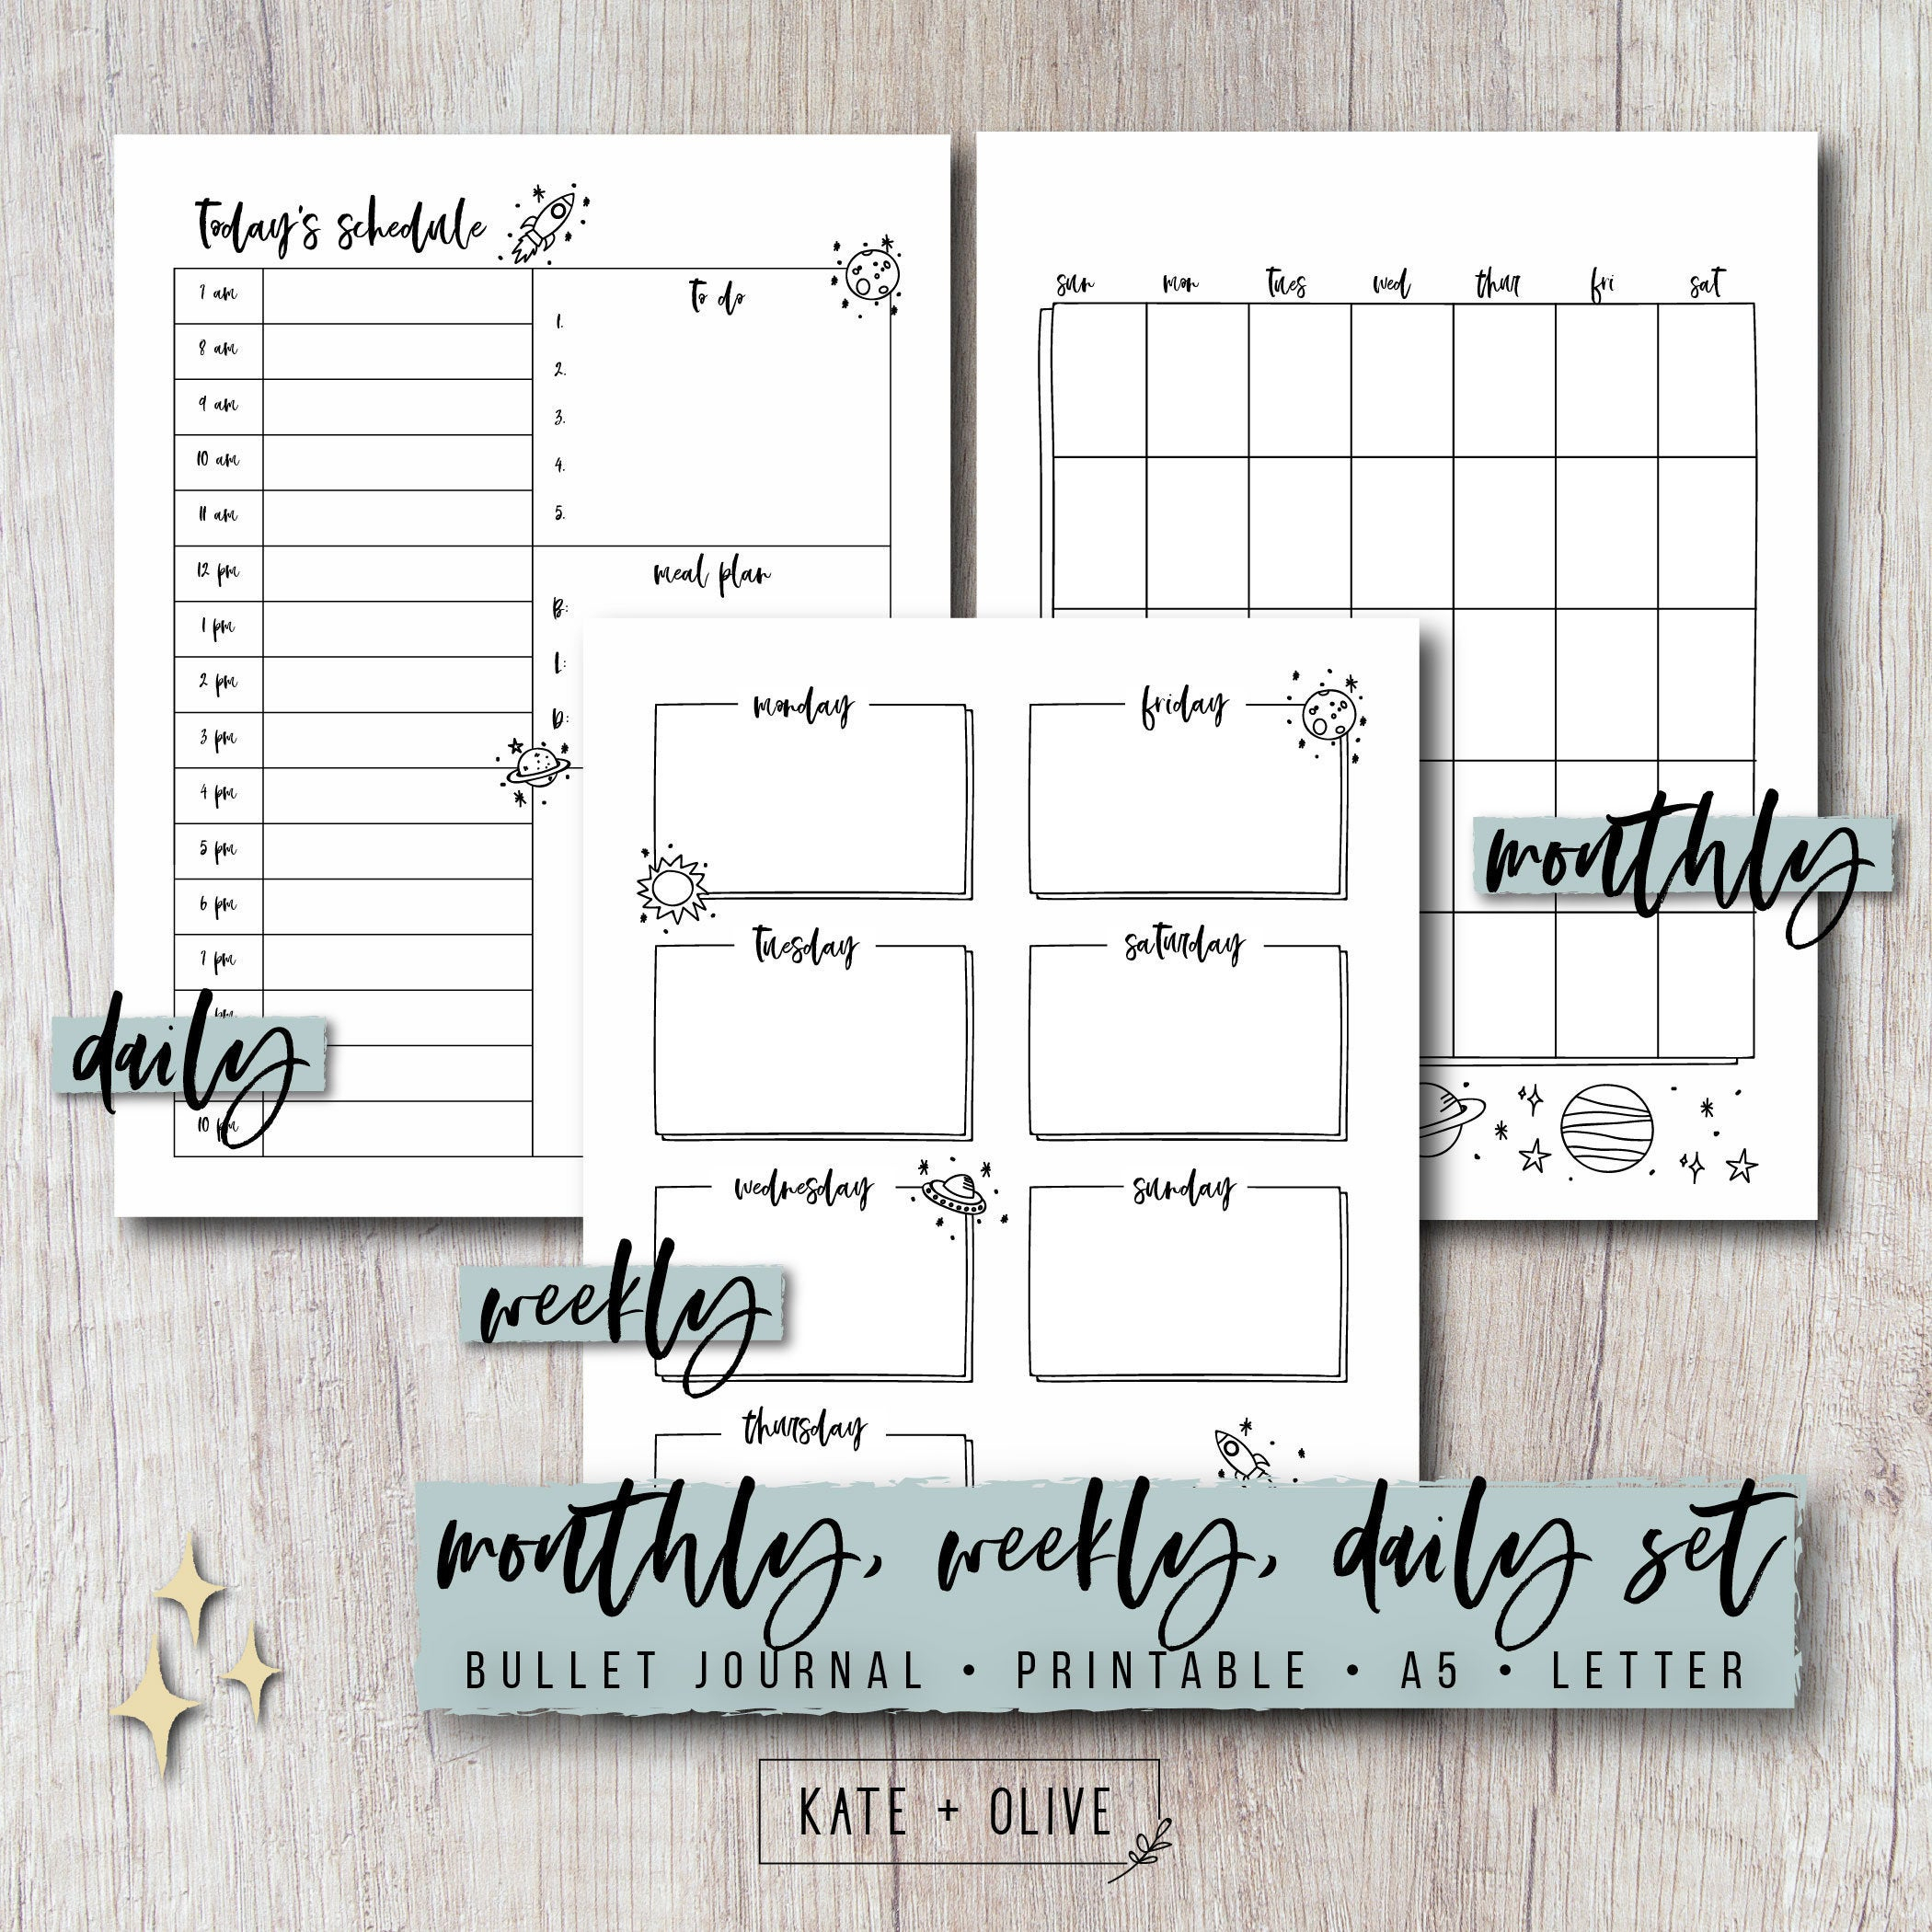 Bullet Journal Printable Planner Set - Monthly, Weekly, Daily Inserts |  Space | Undated Template | Letter & A5 Size Pdf | Instant Download pertaining to Doodle Monthly Planner Printer Templates